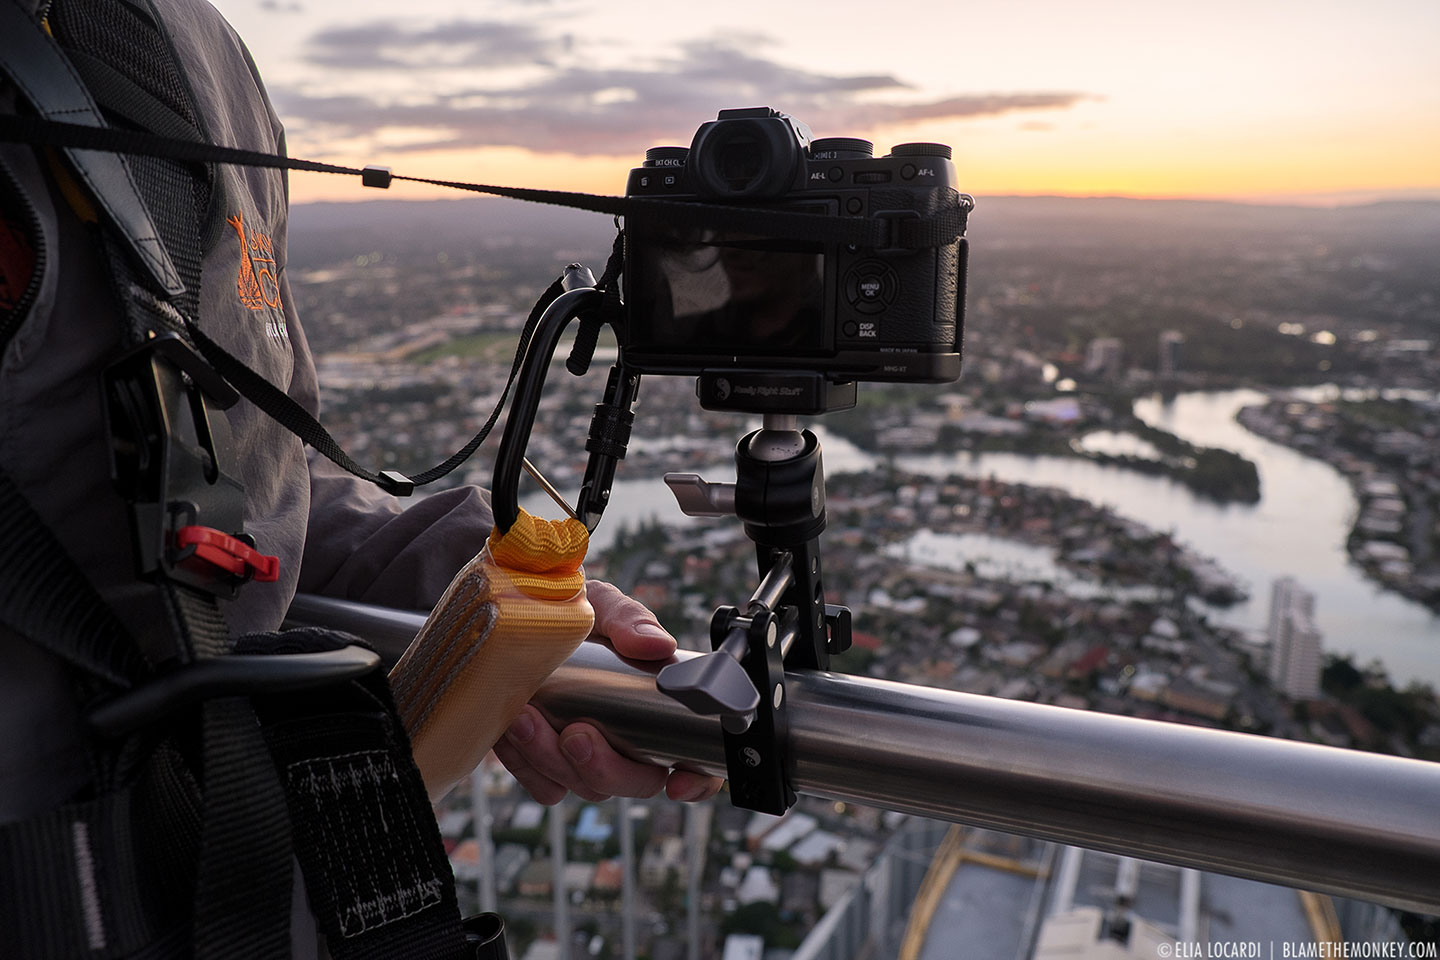 Behind the Scenes on a special Instameet at the Q1 Tower in Gold Coast Australia.